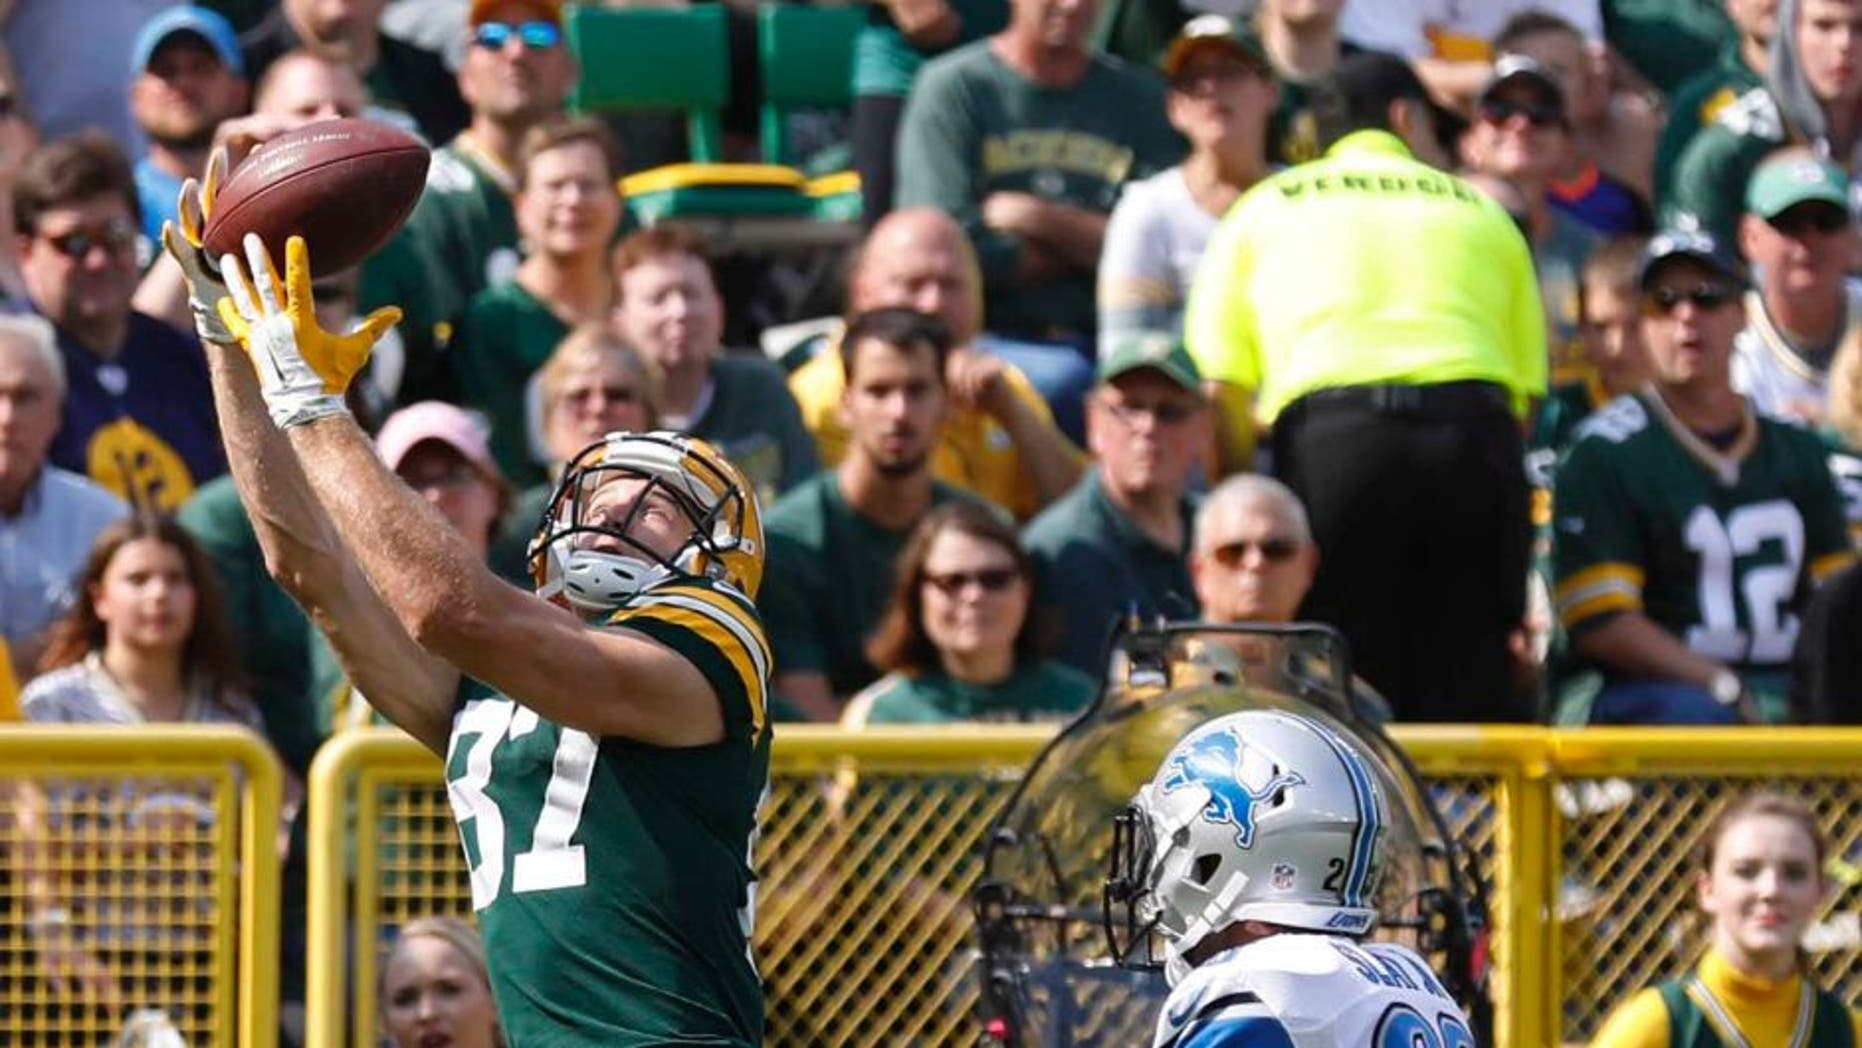 The Green Bay Packers' Jordy Nelson catches a touchdown pass in front of the Detroit Lions' Darius Slay during the first half Sunday, Sept. 25, 2016, in Green Bay, Wis.